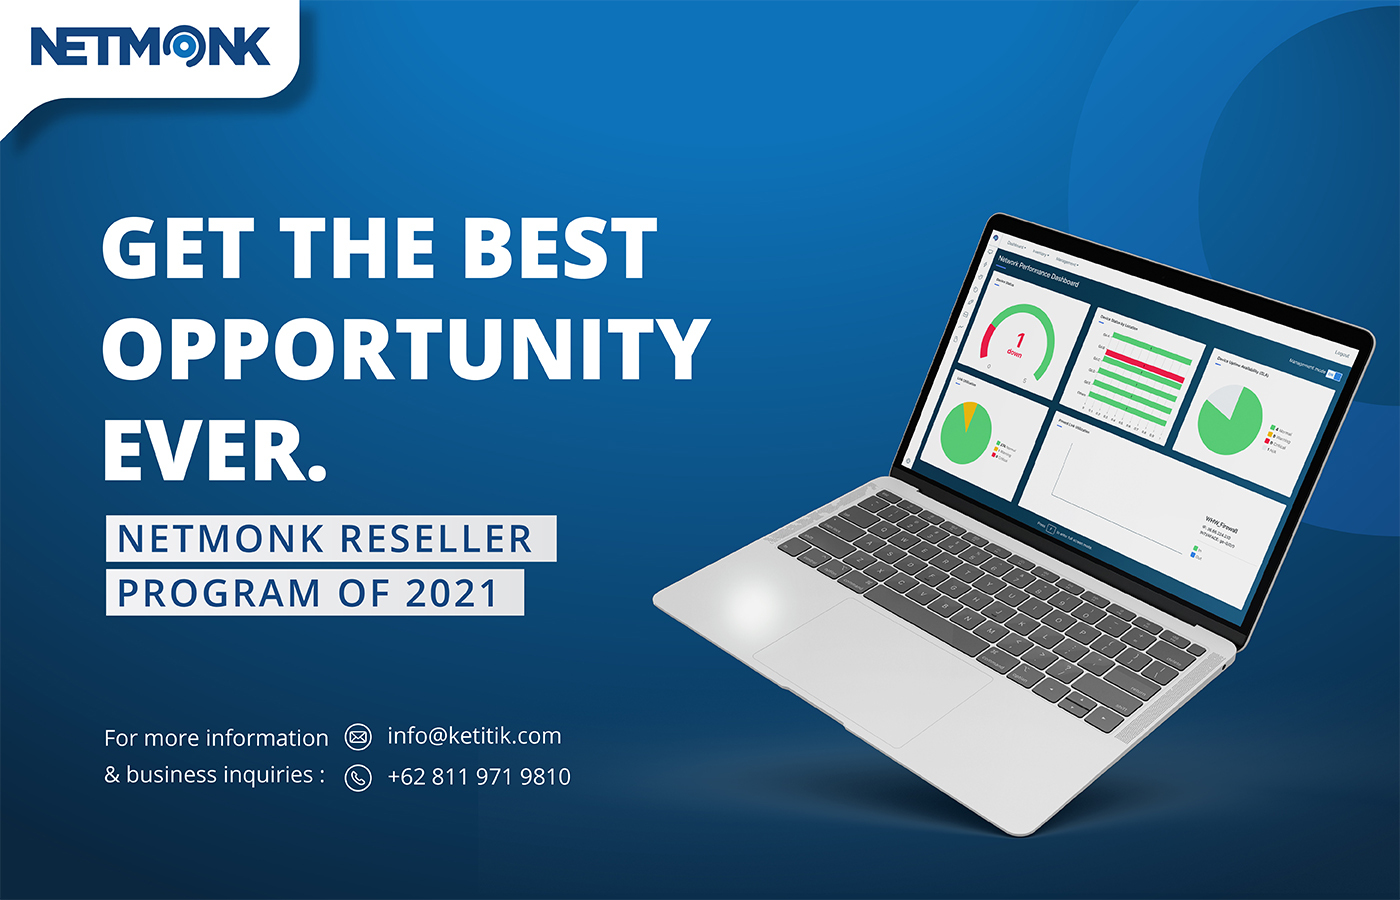 Netmonk Reseller Program 2021